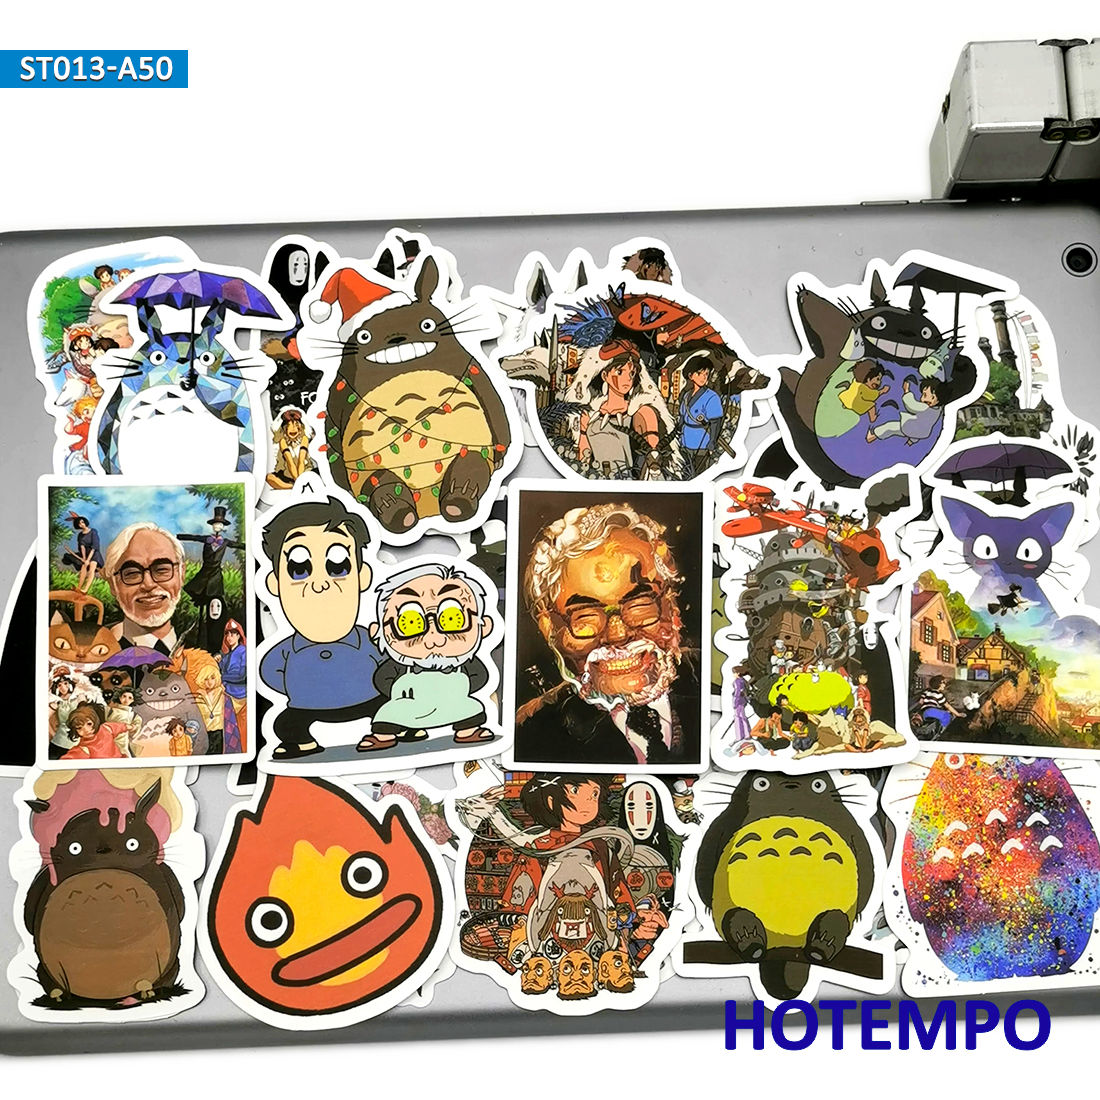 50pcs Anime Movie Manga Miyazaki Hayao Cute Cartoon Stickers Toys For Kids Mobile Phone Laptop Luggage Skateboard Decal Stickers